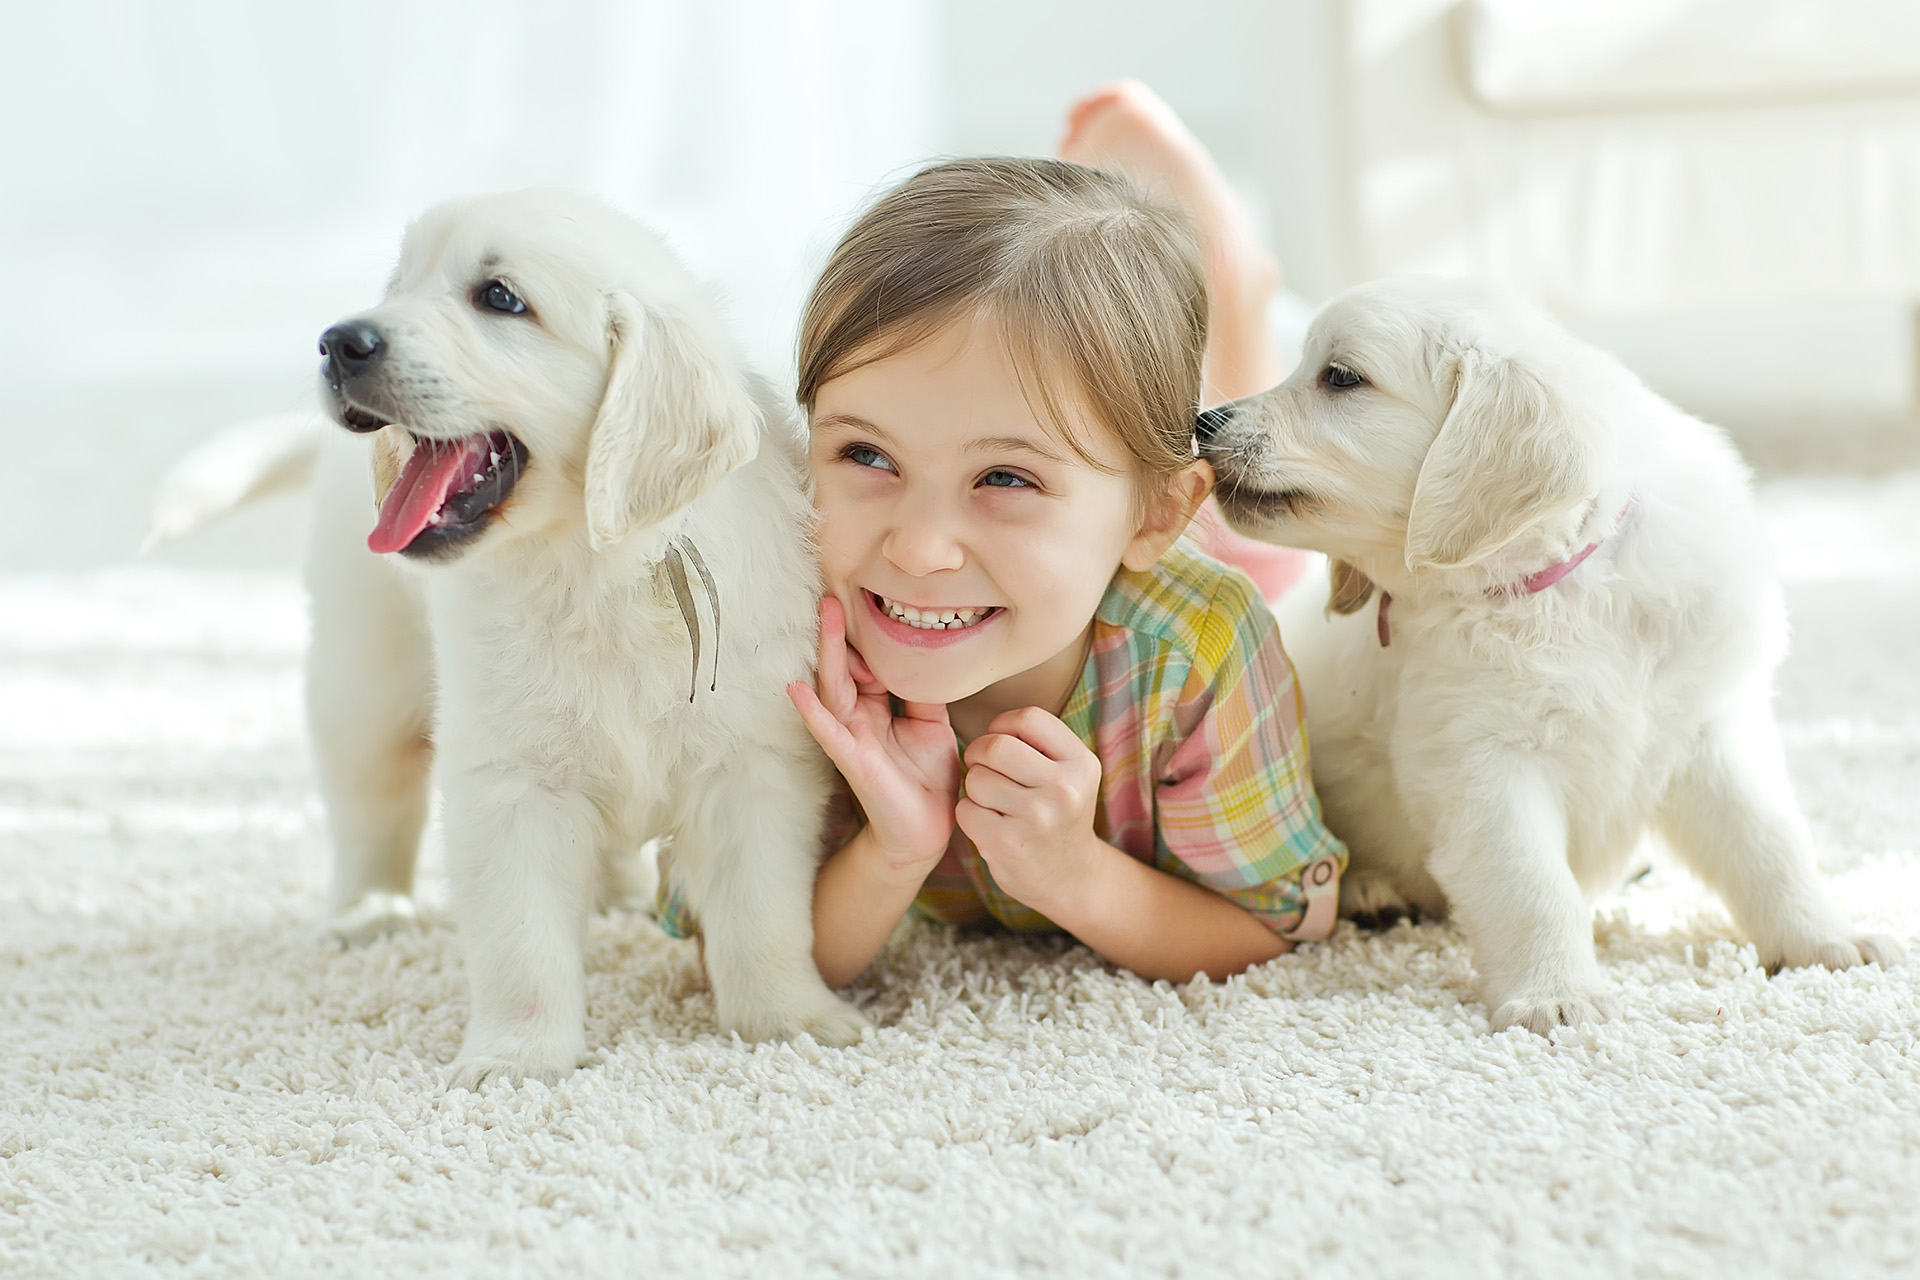 girl_puppies